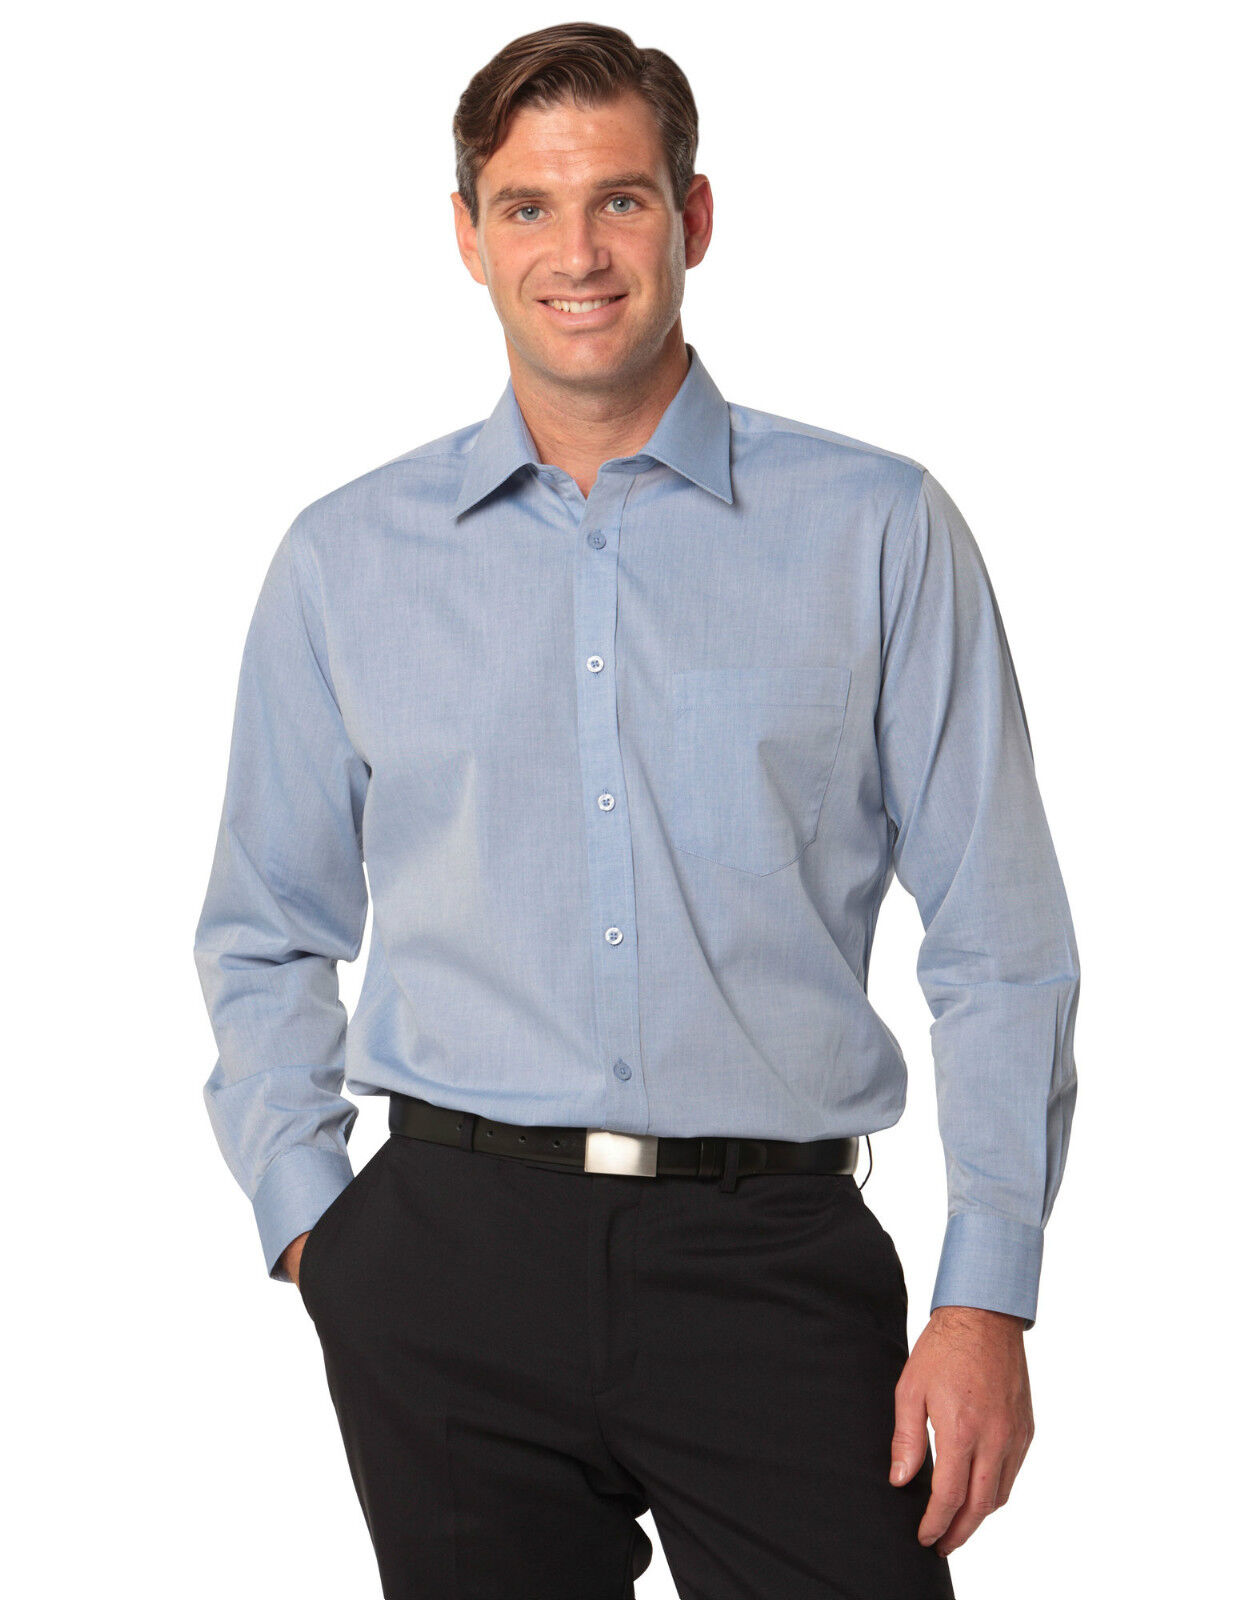 a4ba32a4824 Details about NEW MENS FINE CHAMBRAY LONG SLEEVE BUSINESS CASUAL WORK DRESS  MEN S SHIRT